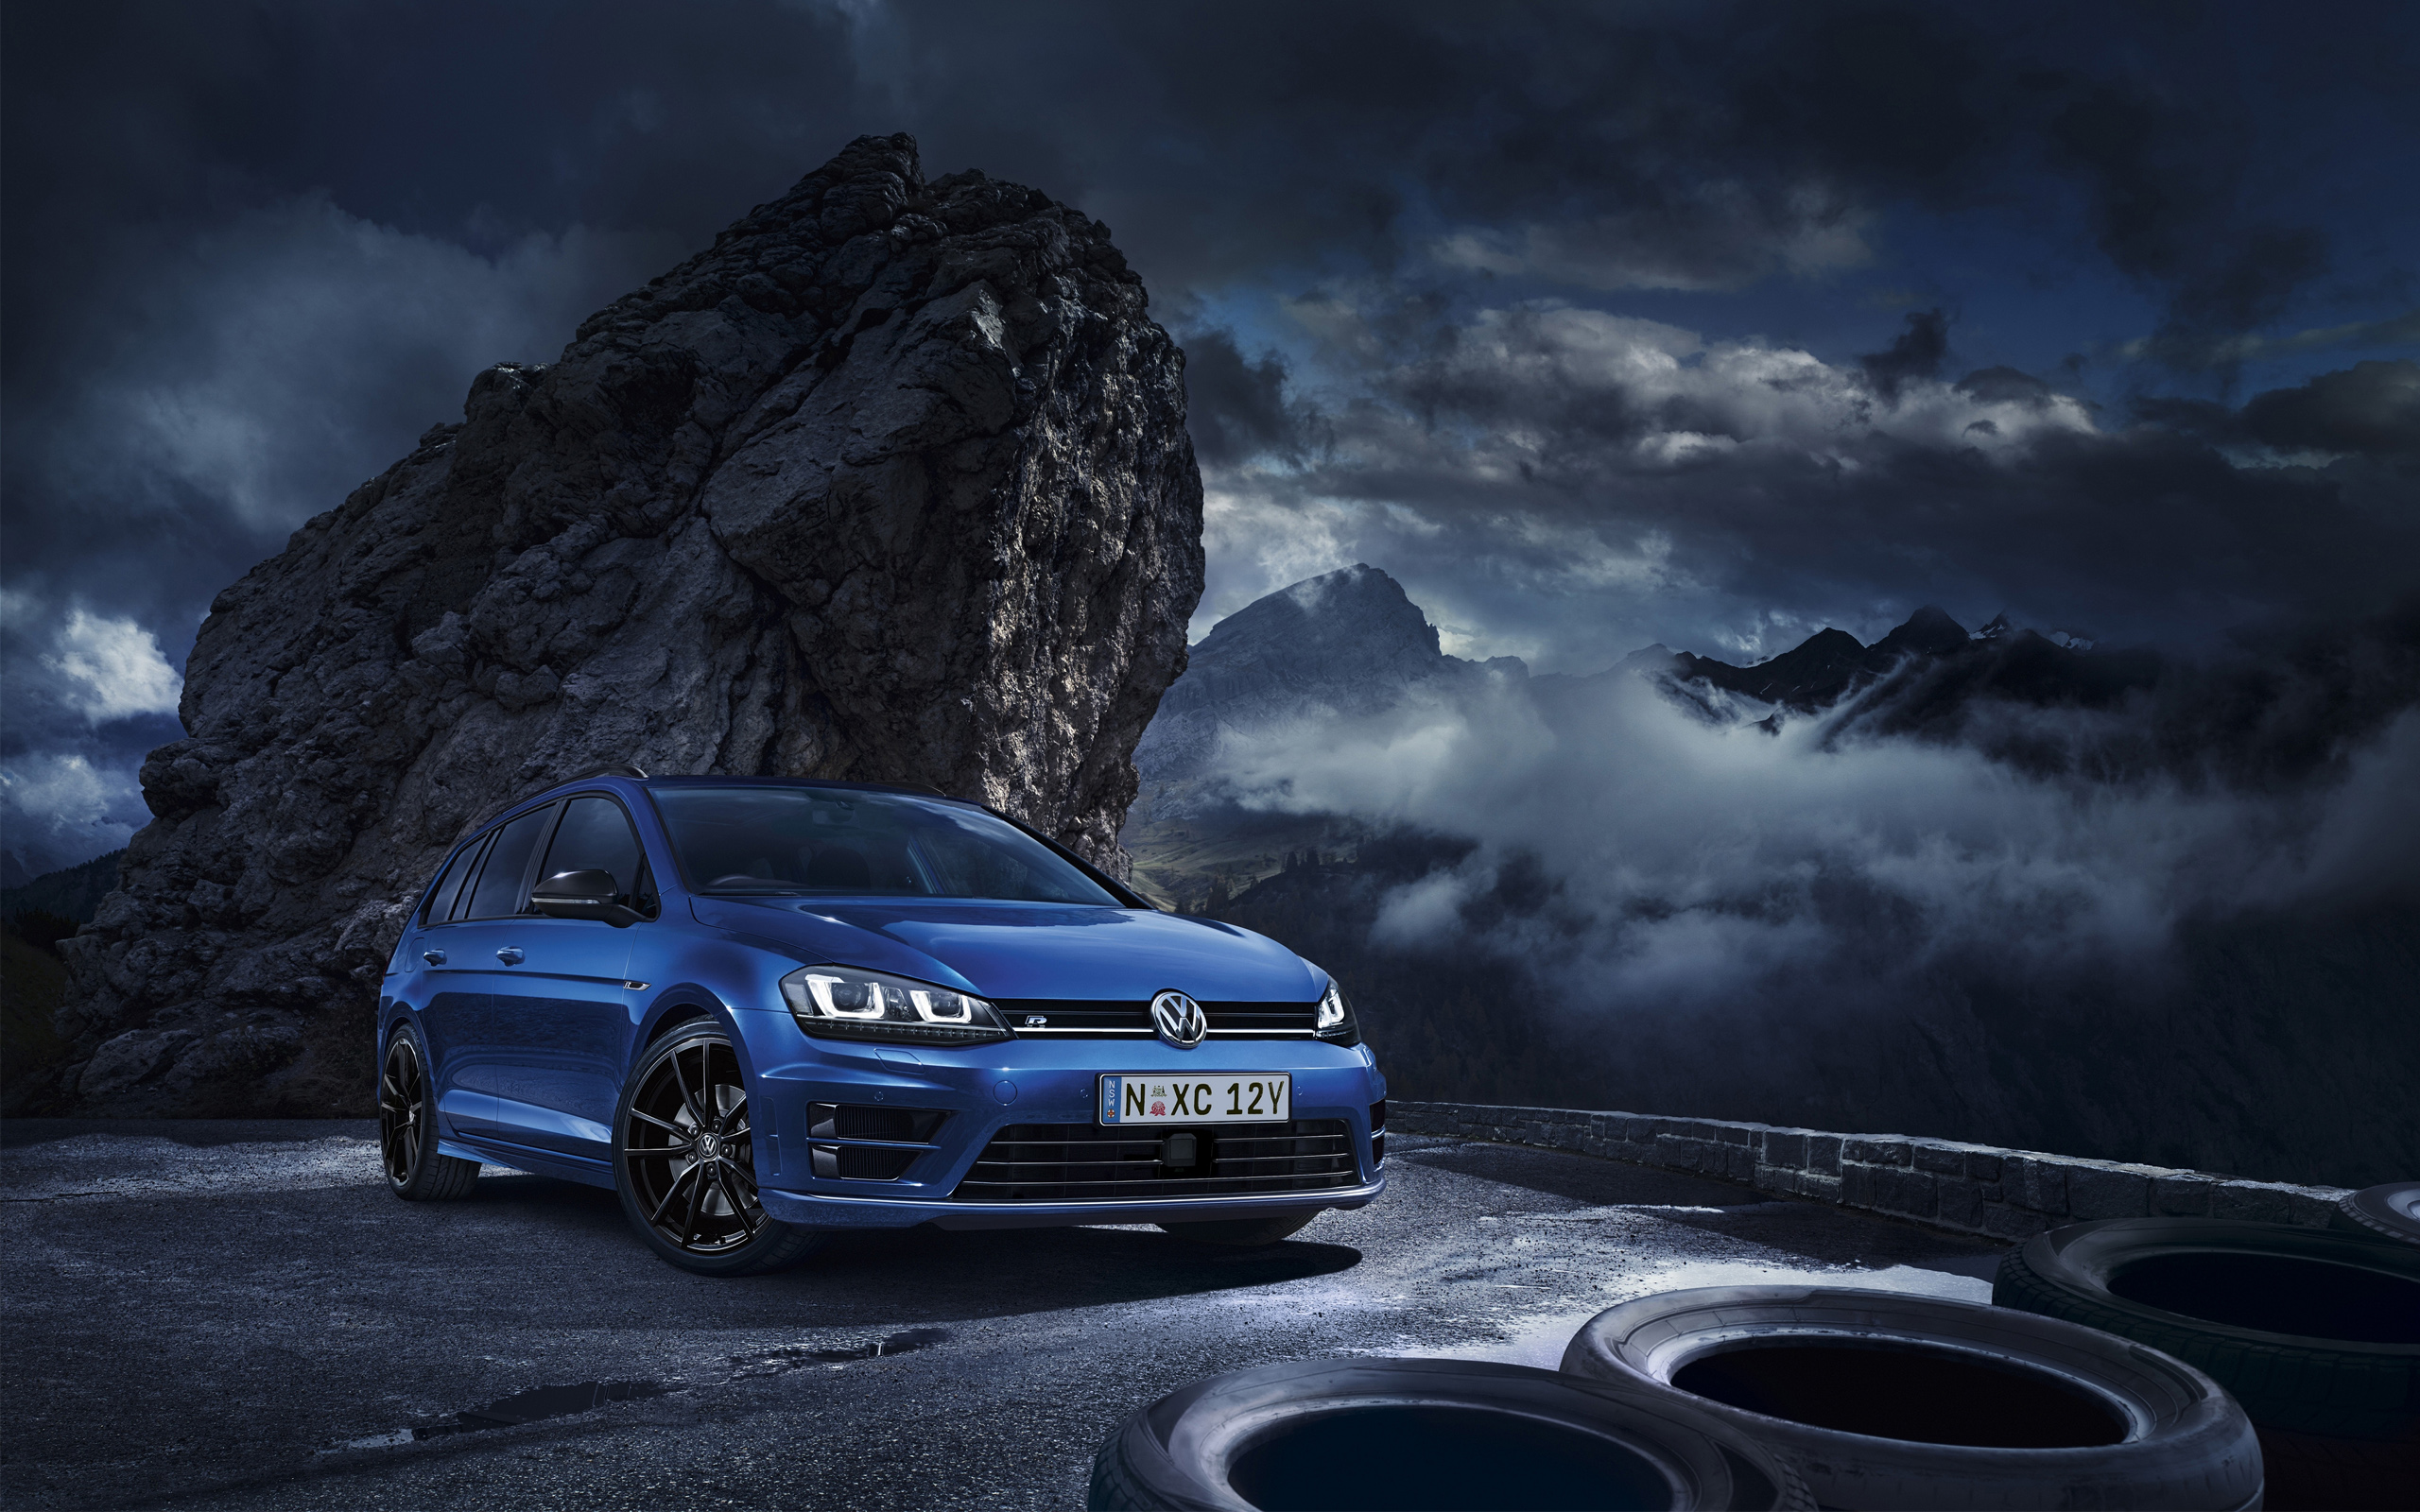 2015 volkswagen golf r wagon wallpaper | hd car wallpapers | id #5481